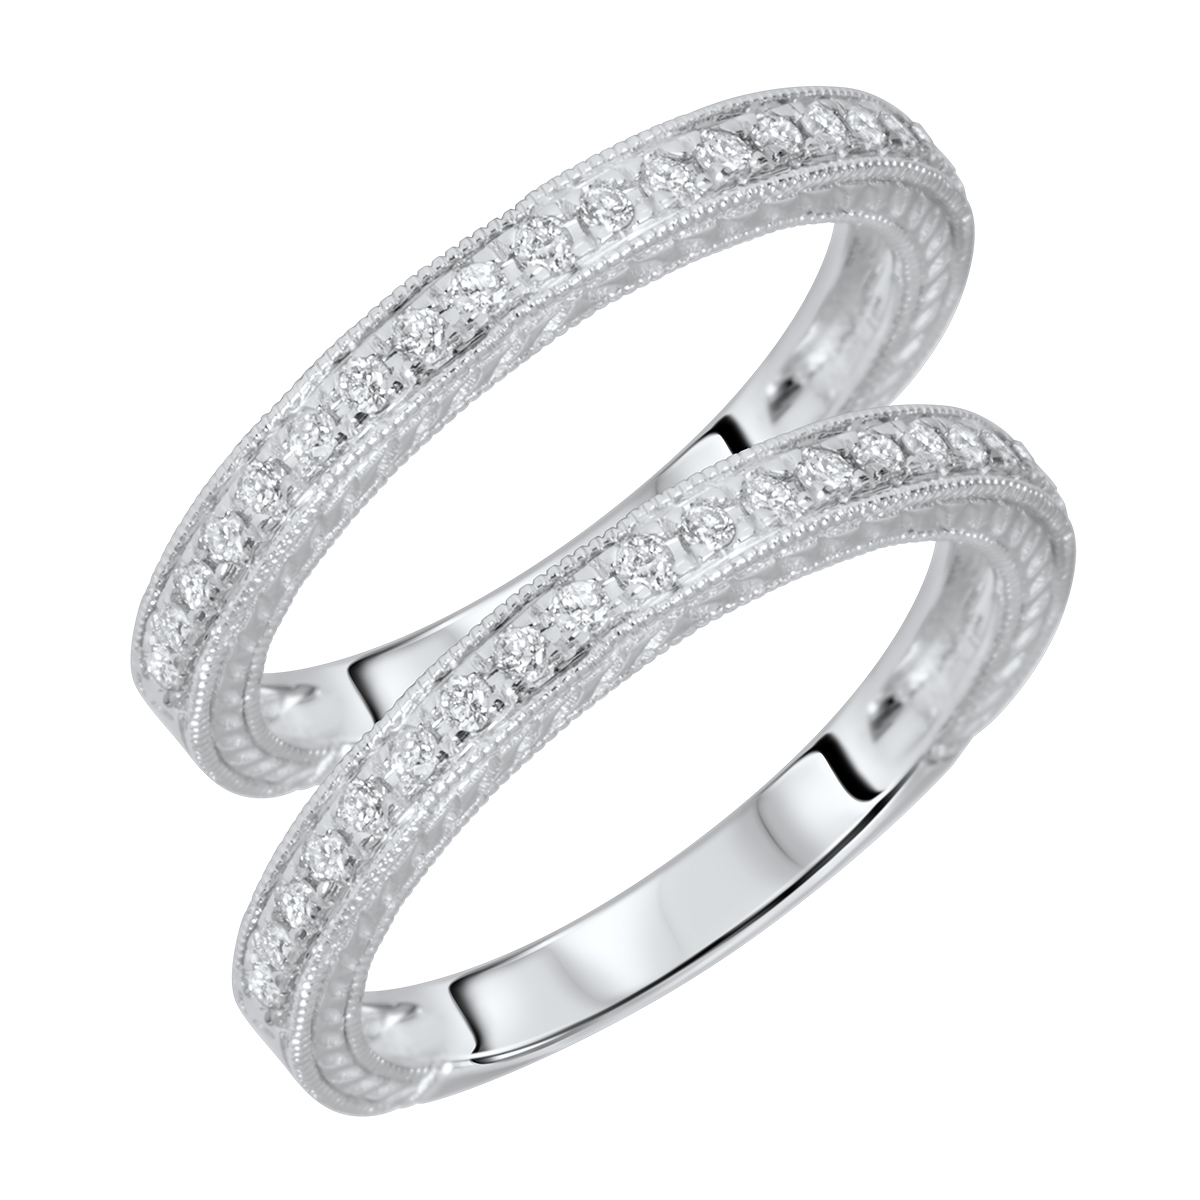 3/8 Carat T.W. Round Cut Ladies Same Sex Wedding Band Set 14K White Gold- Size 8